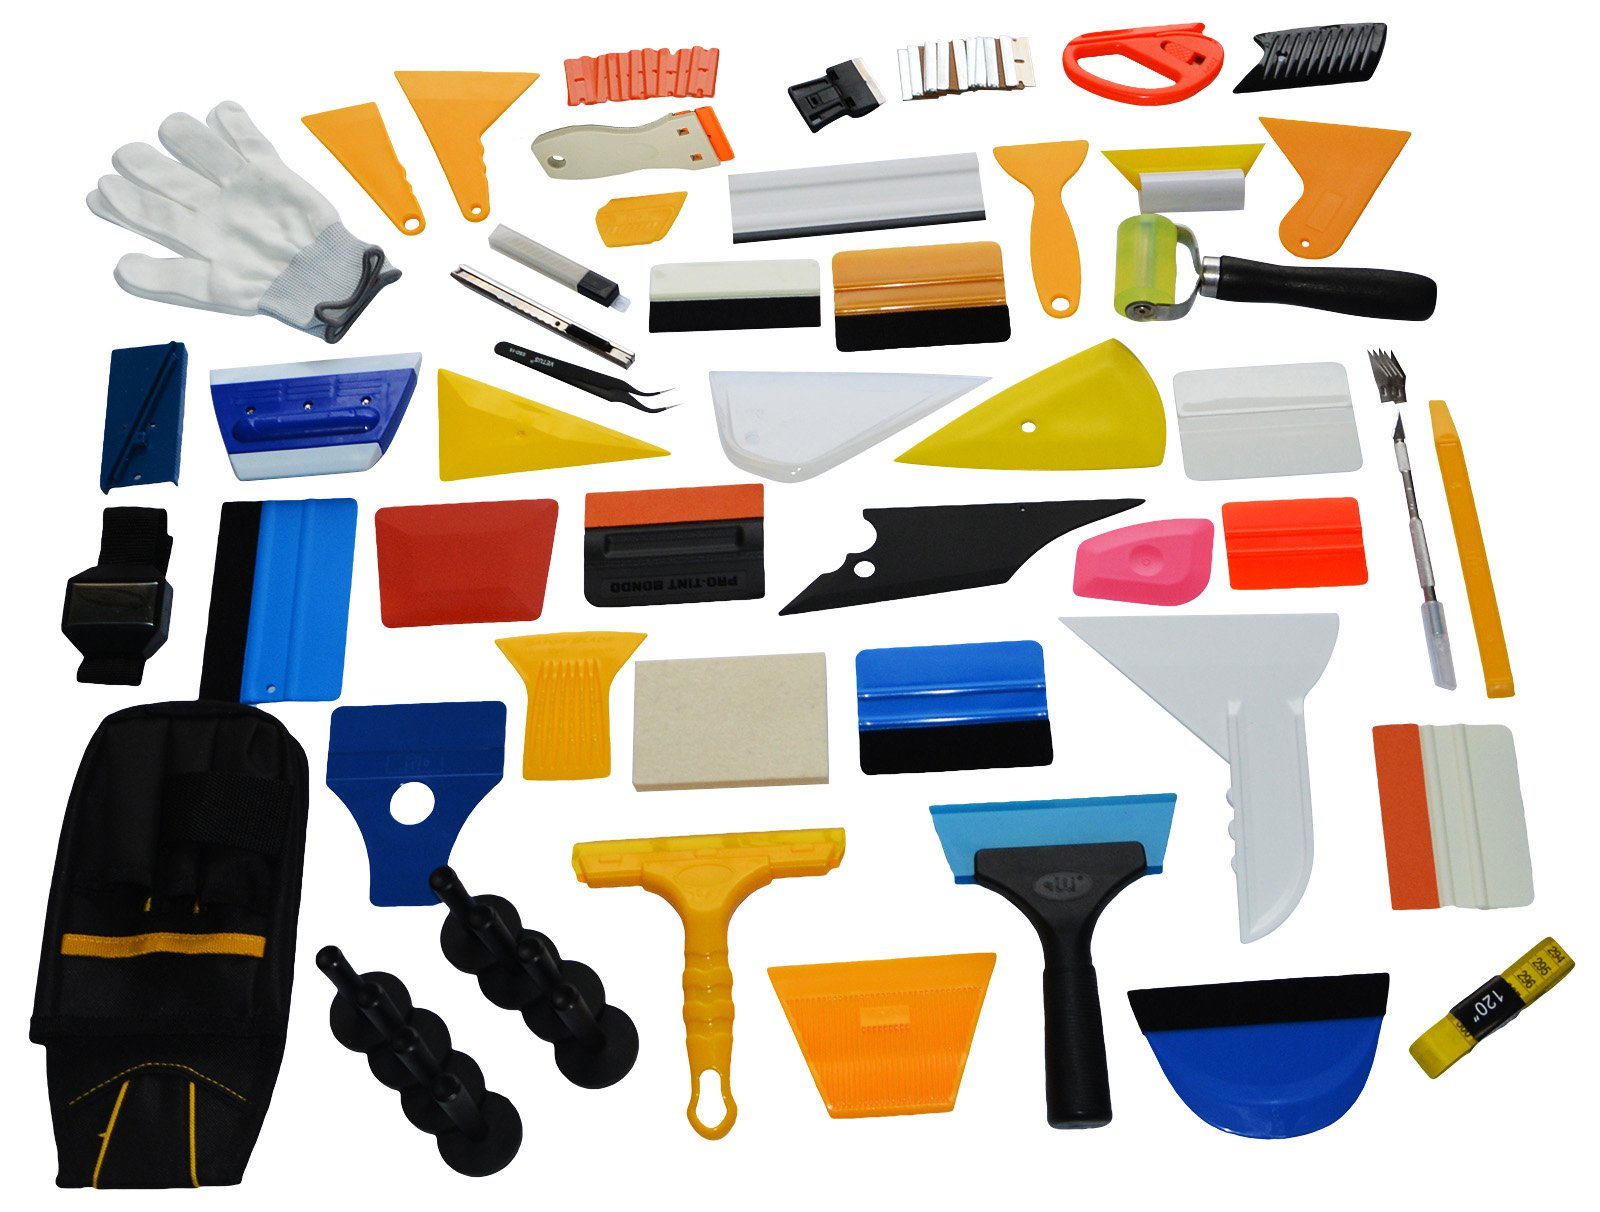 Ehids Professional Window Film Vinyl Wrap Kit Including All Tools Full Complete Squeegees, Scrapers, Cutters, Holders, Tool Pouch by Ehdis (Image #3)